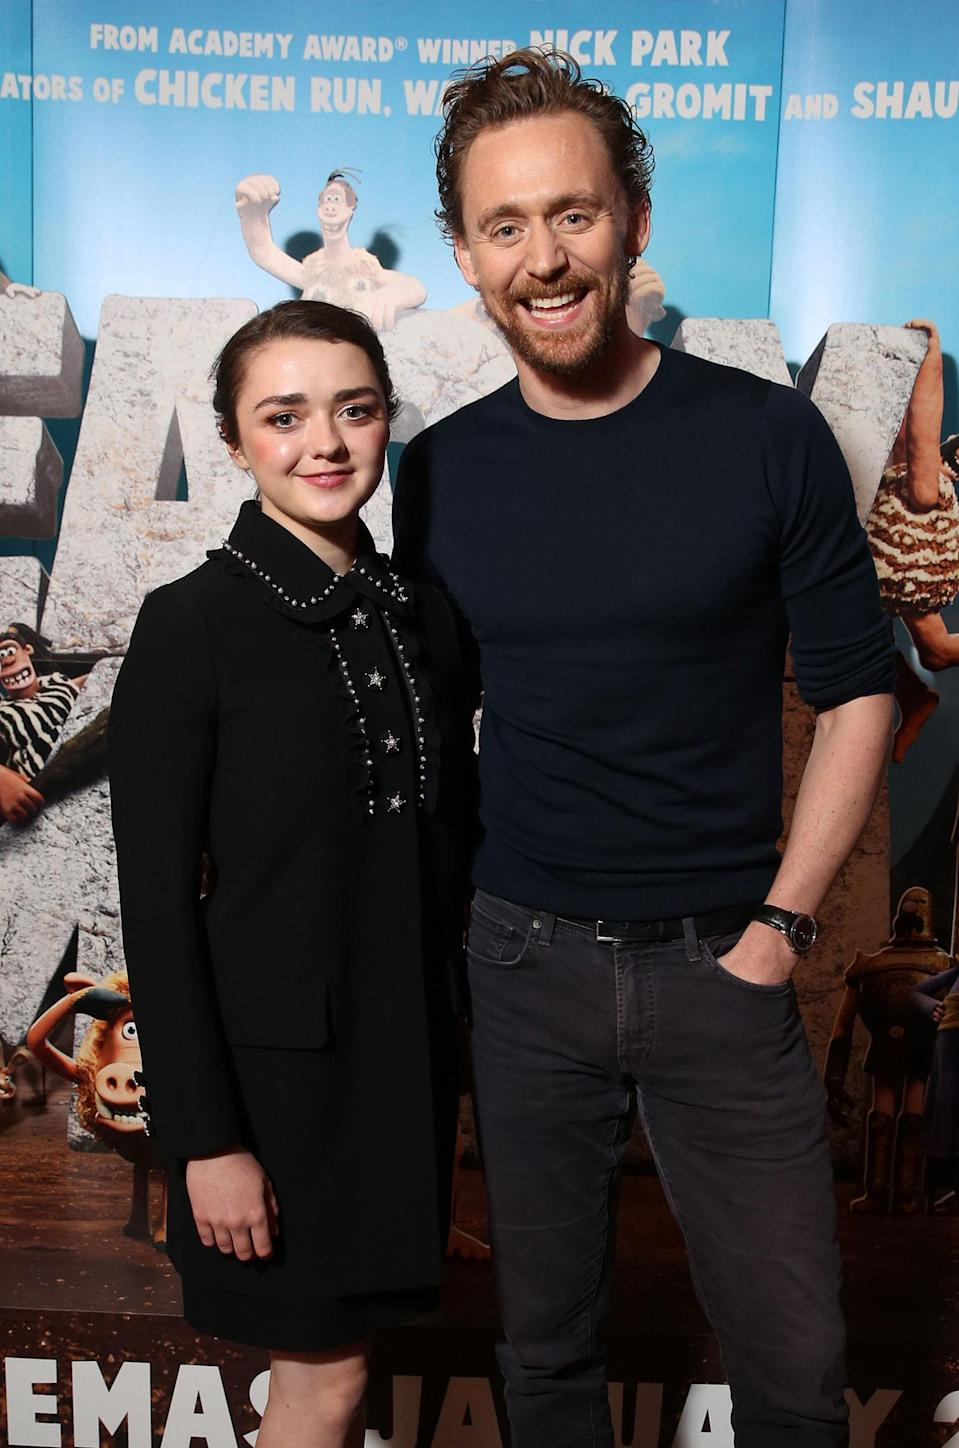 Maisie Williams and Tom Hiddleston, who play Goona and Lord Nooth, at the 'Early Man' preview photocall (Studiocanal)